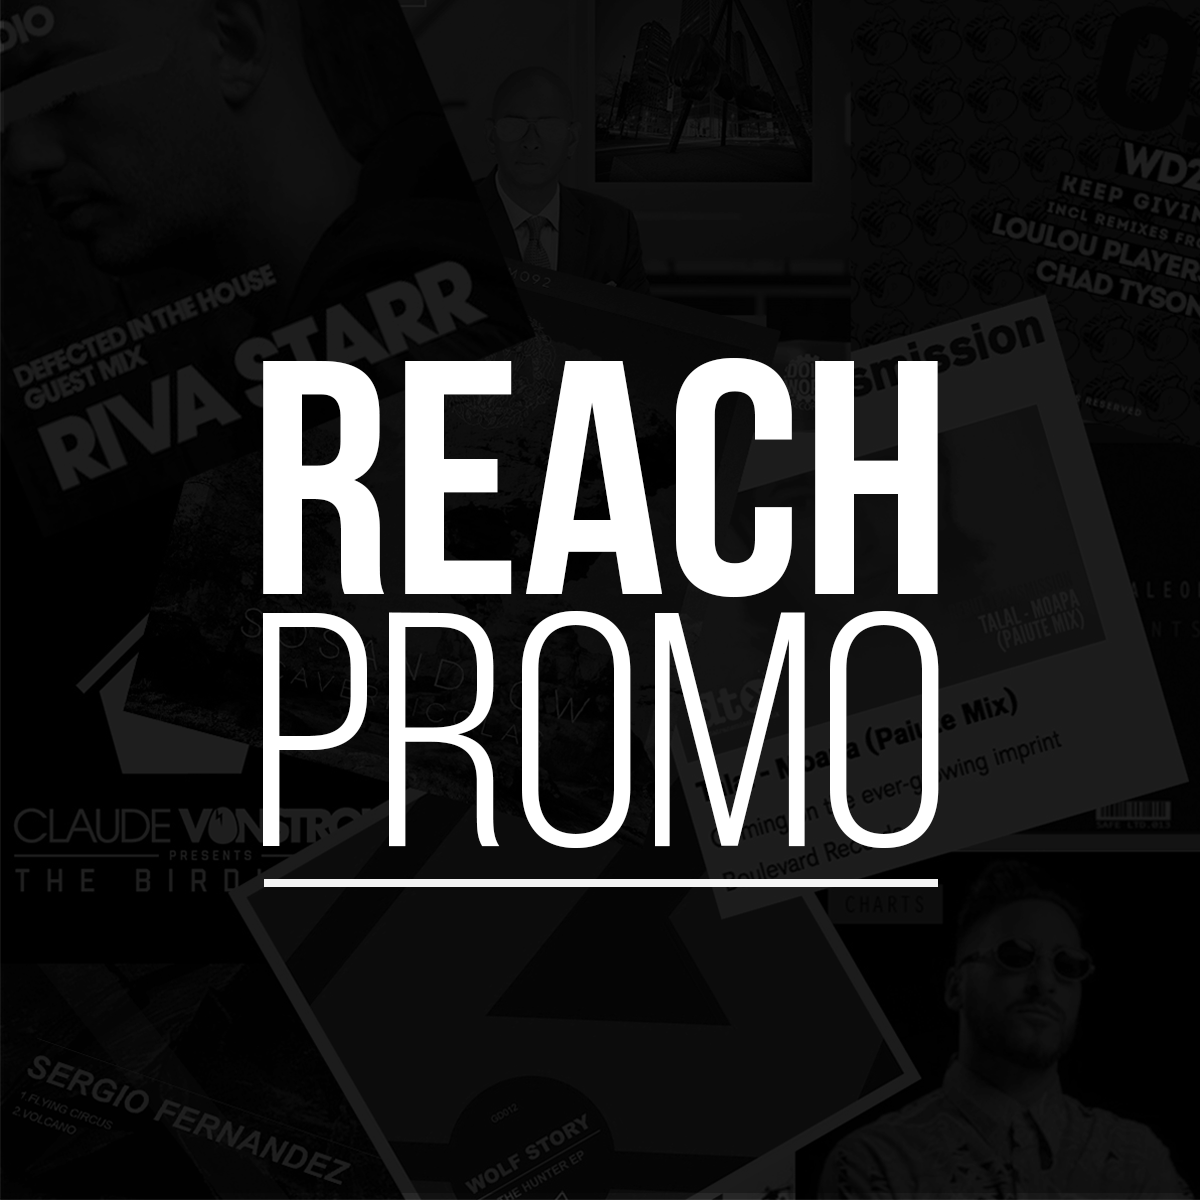 Reach Promo – PR agency for house and techno music – pitchup